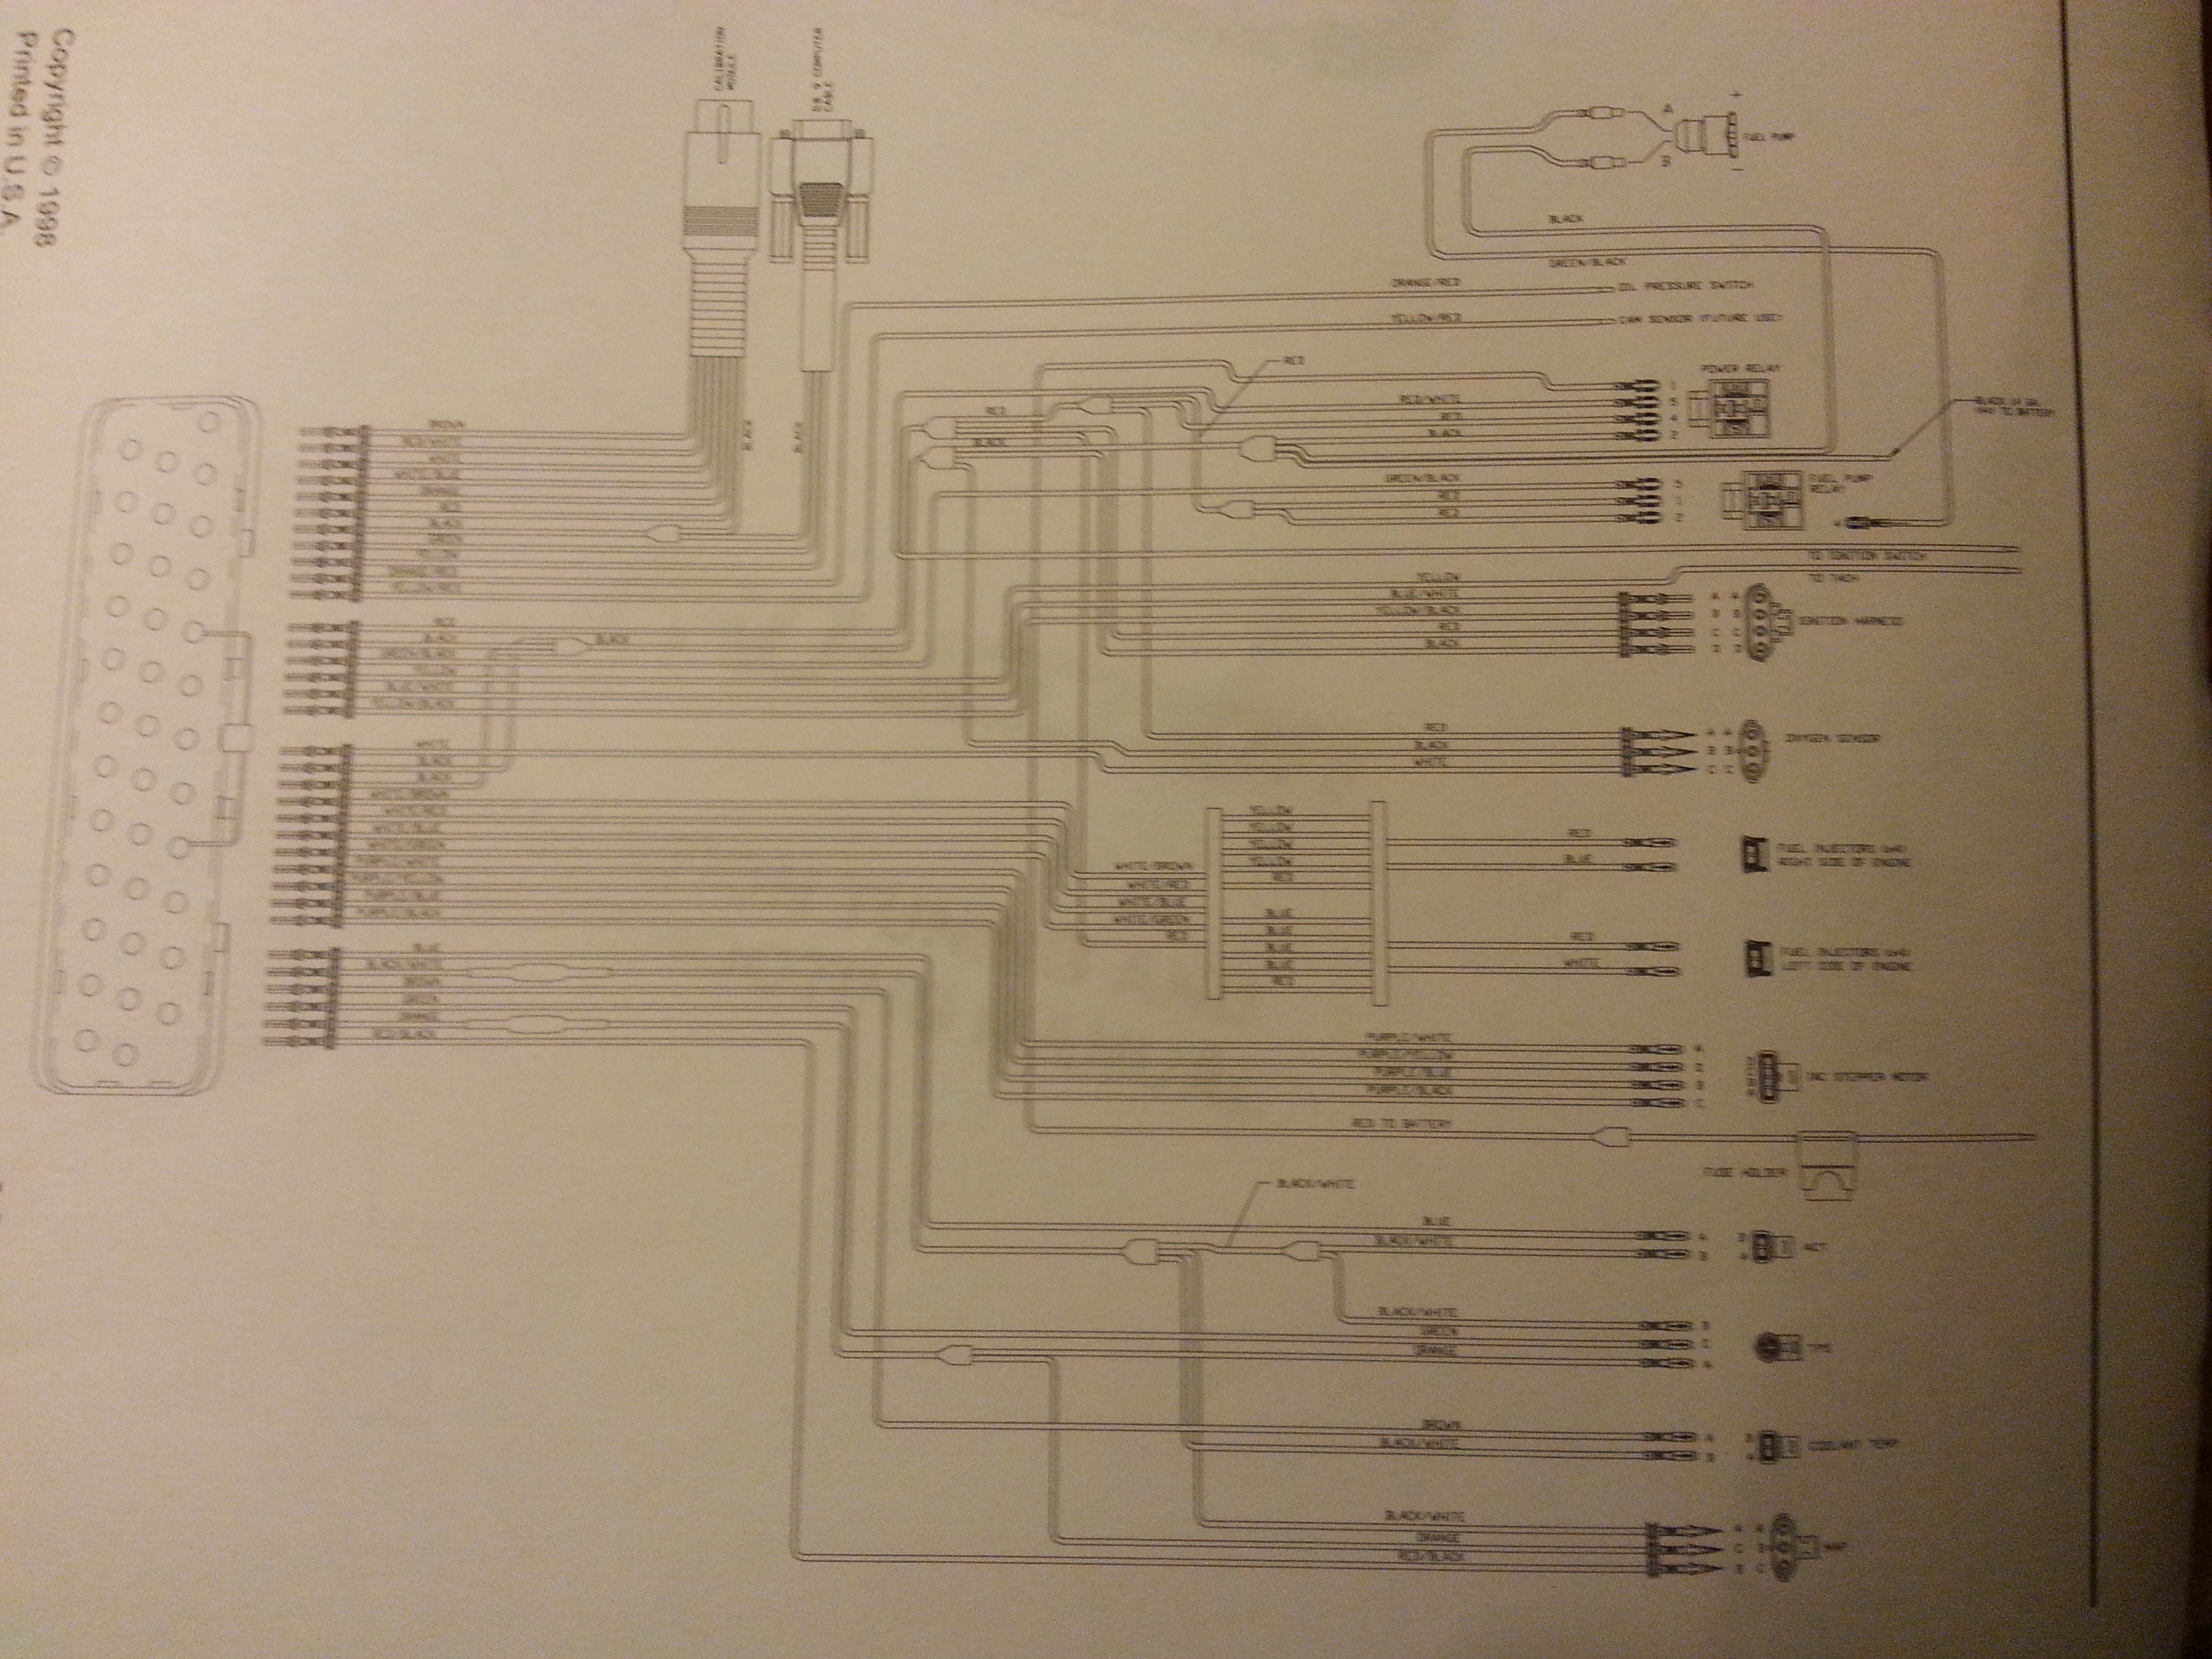 33150967963_f08af33678_o holley pro jection 2 mpi ecu holley mpi commander 950 wiring diagram at et-consult.org